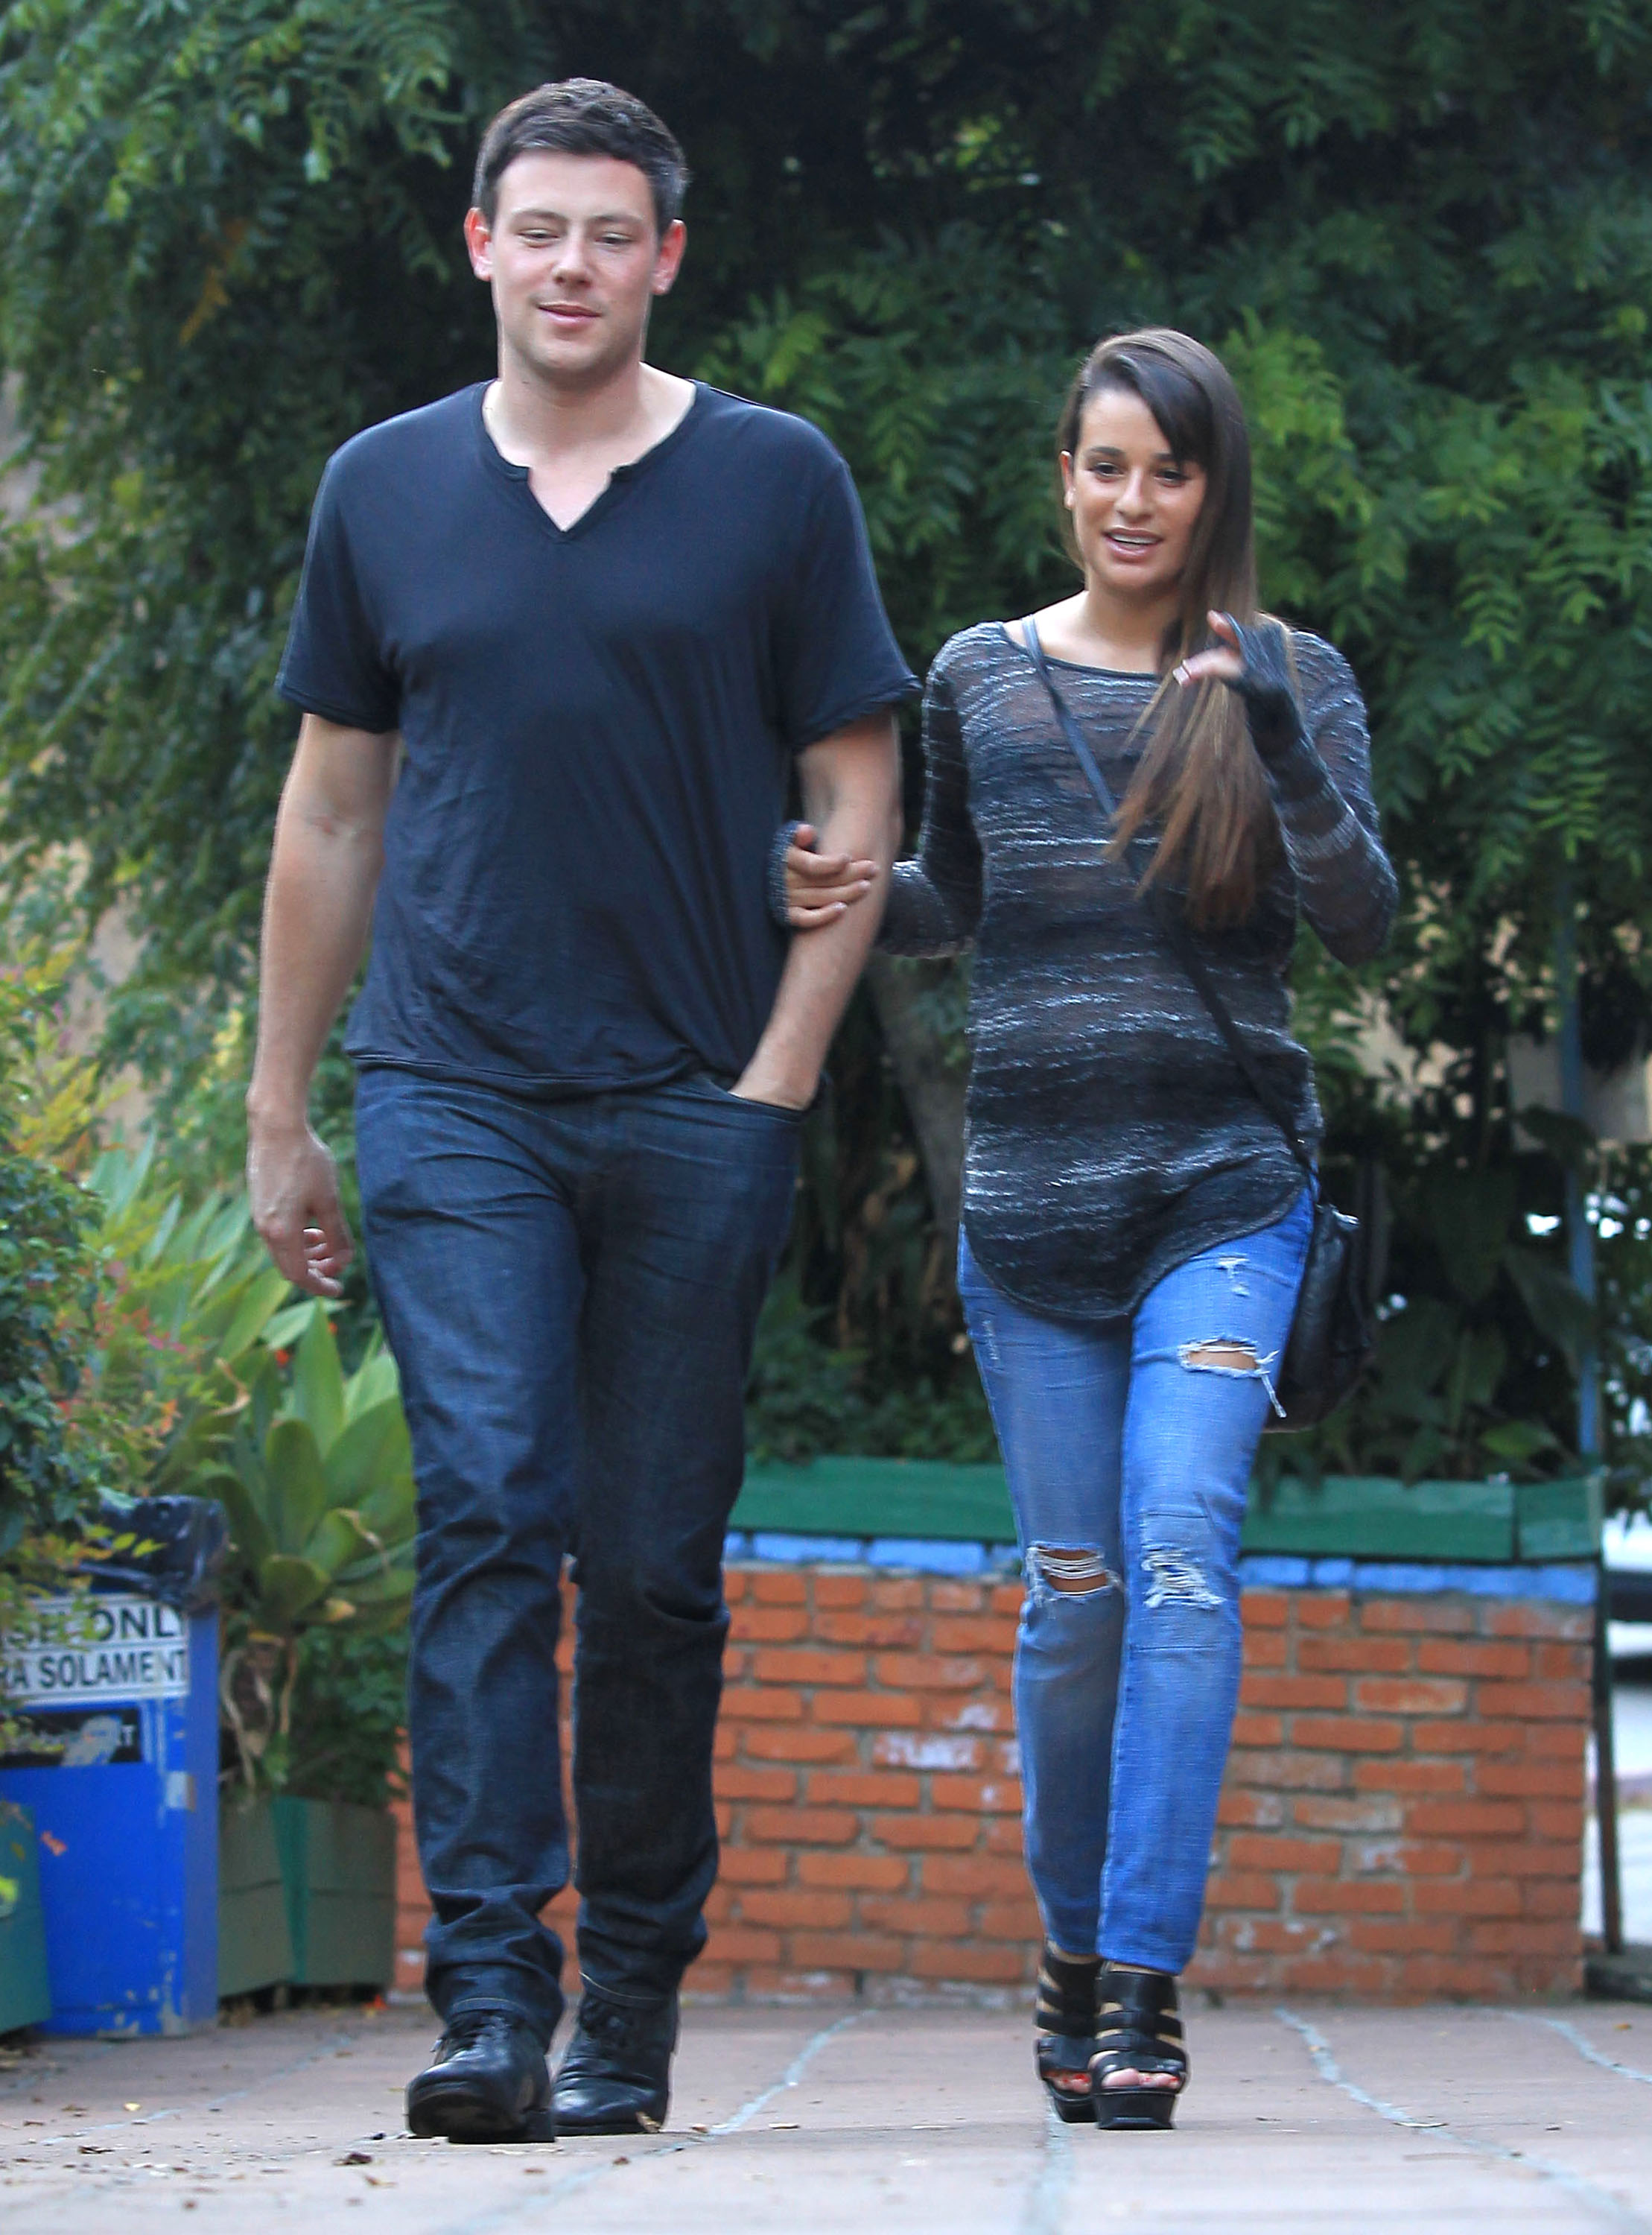 Glee's Cory Monteith and Lea Michele hung out.